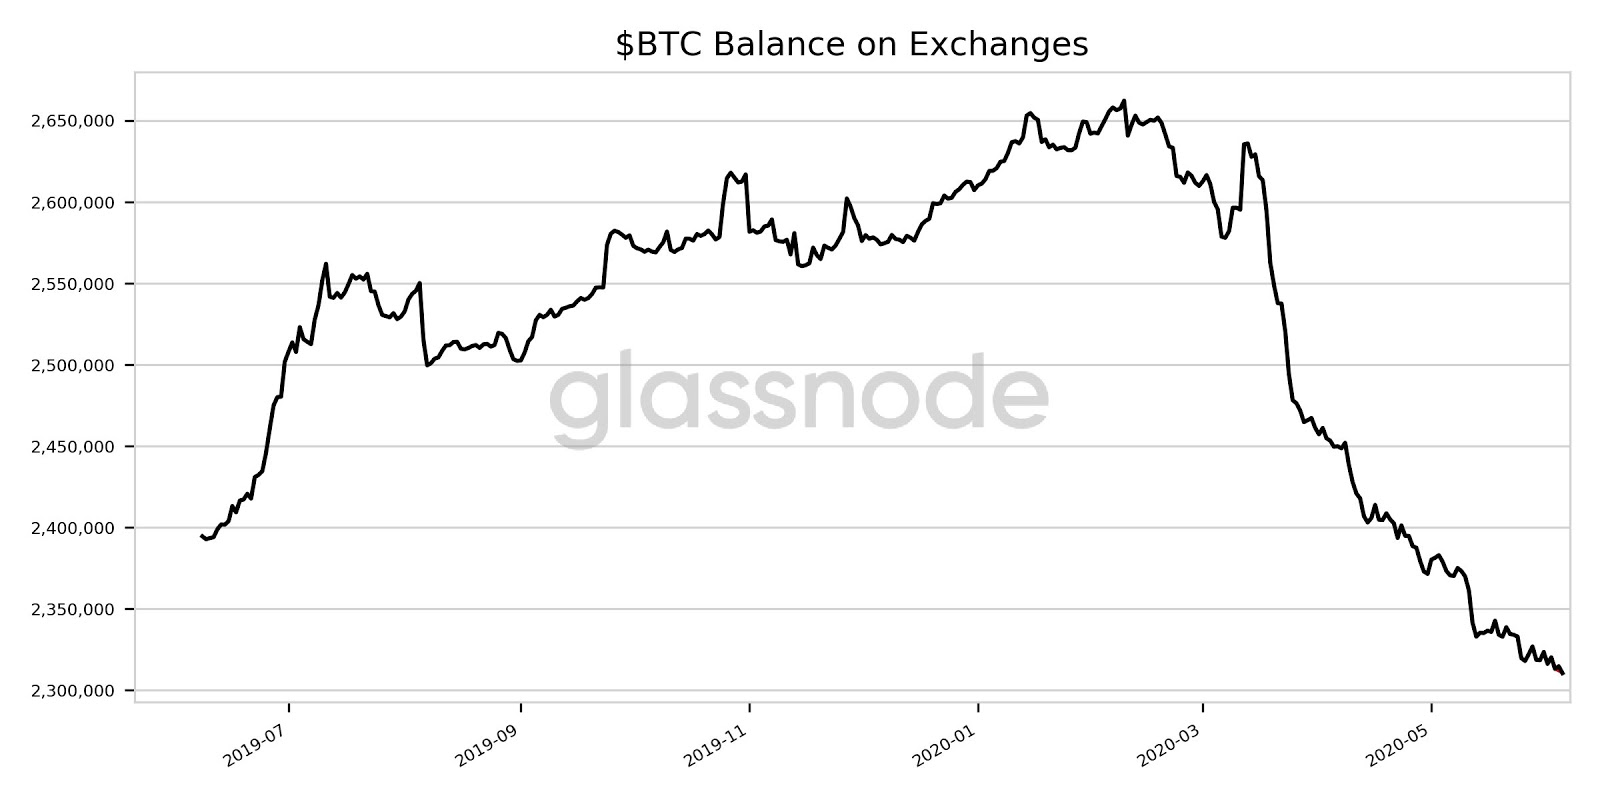 $BTC Balance on Exchanges